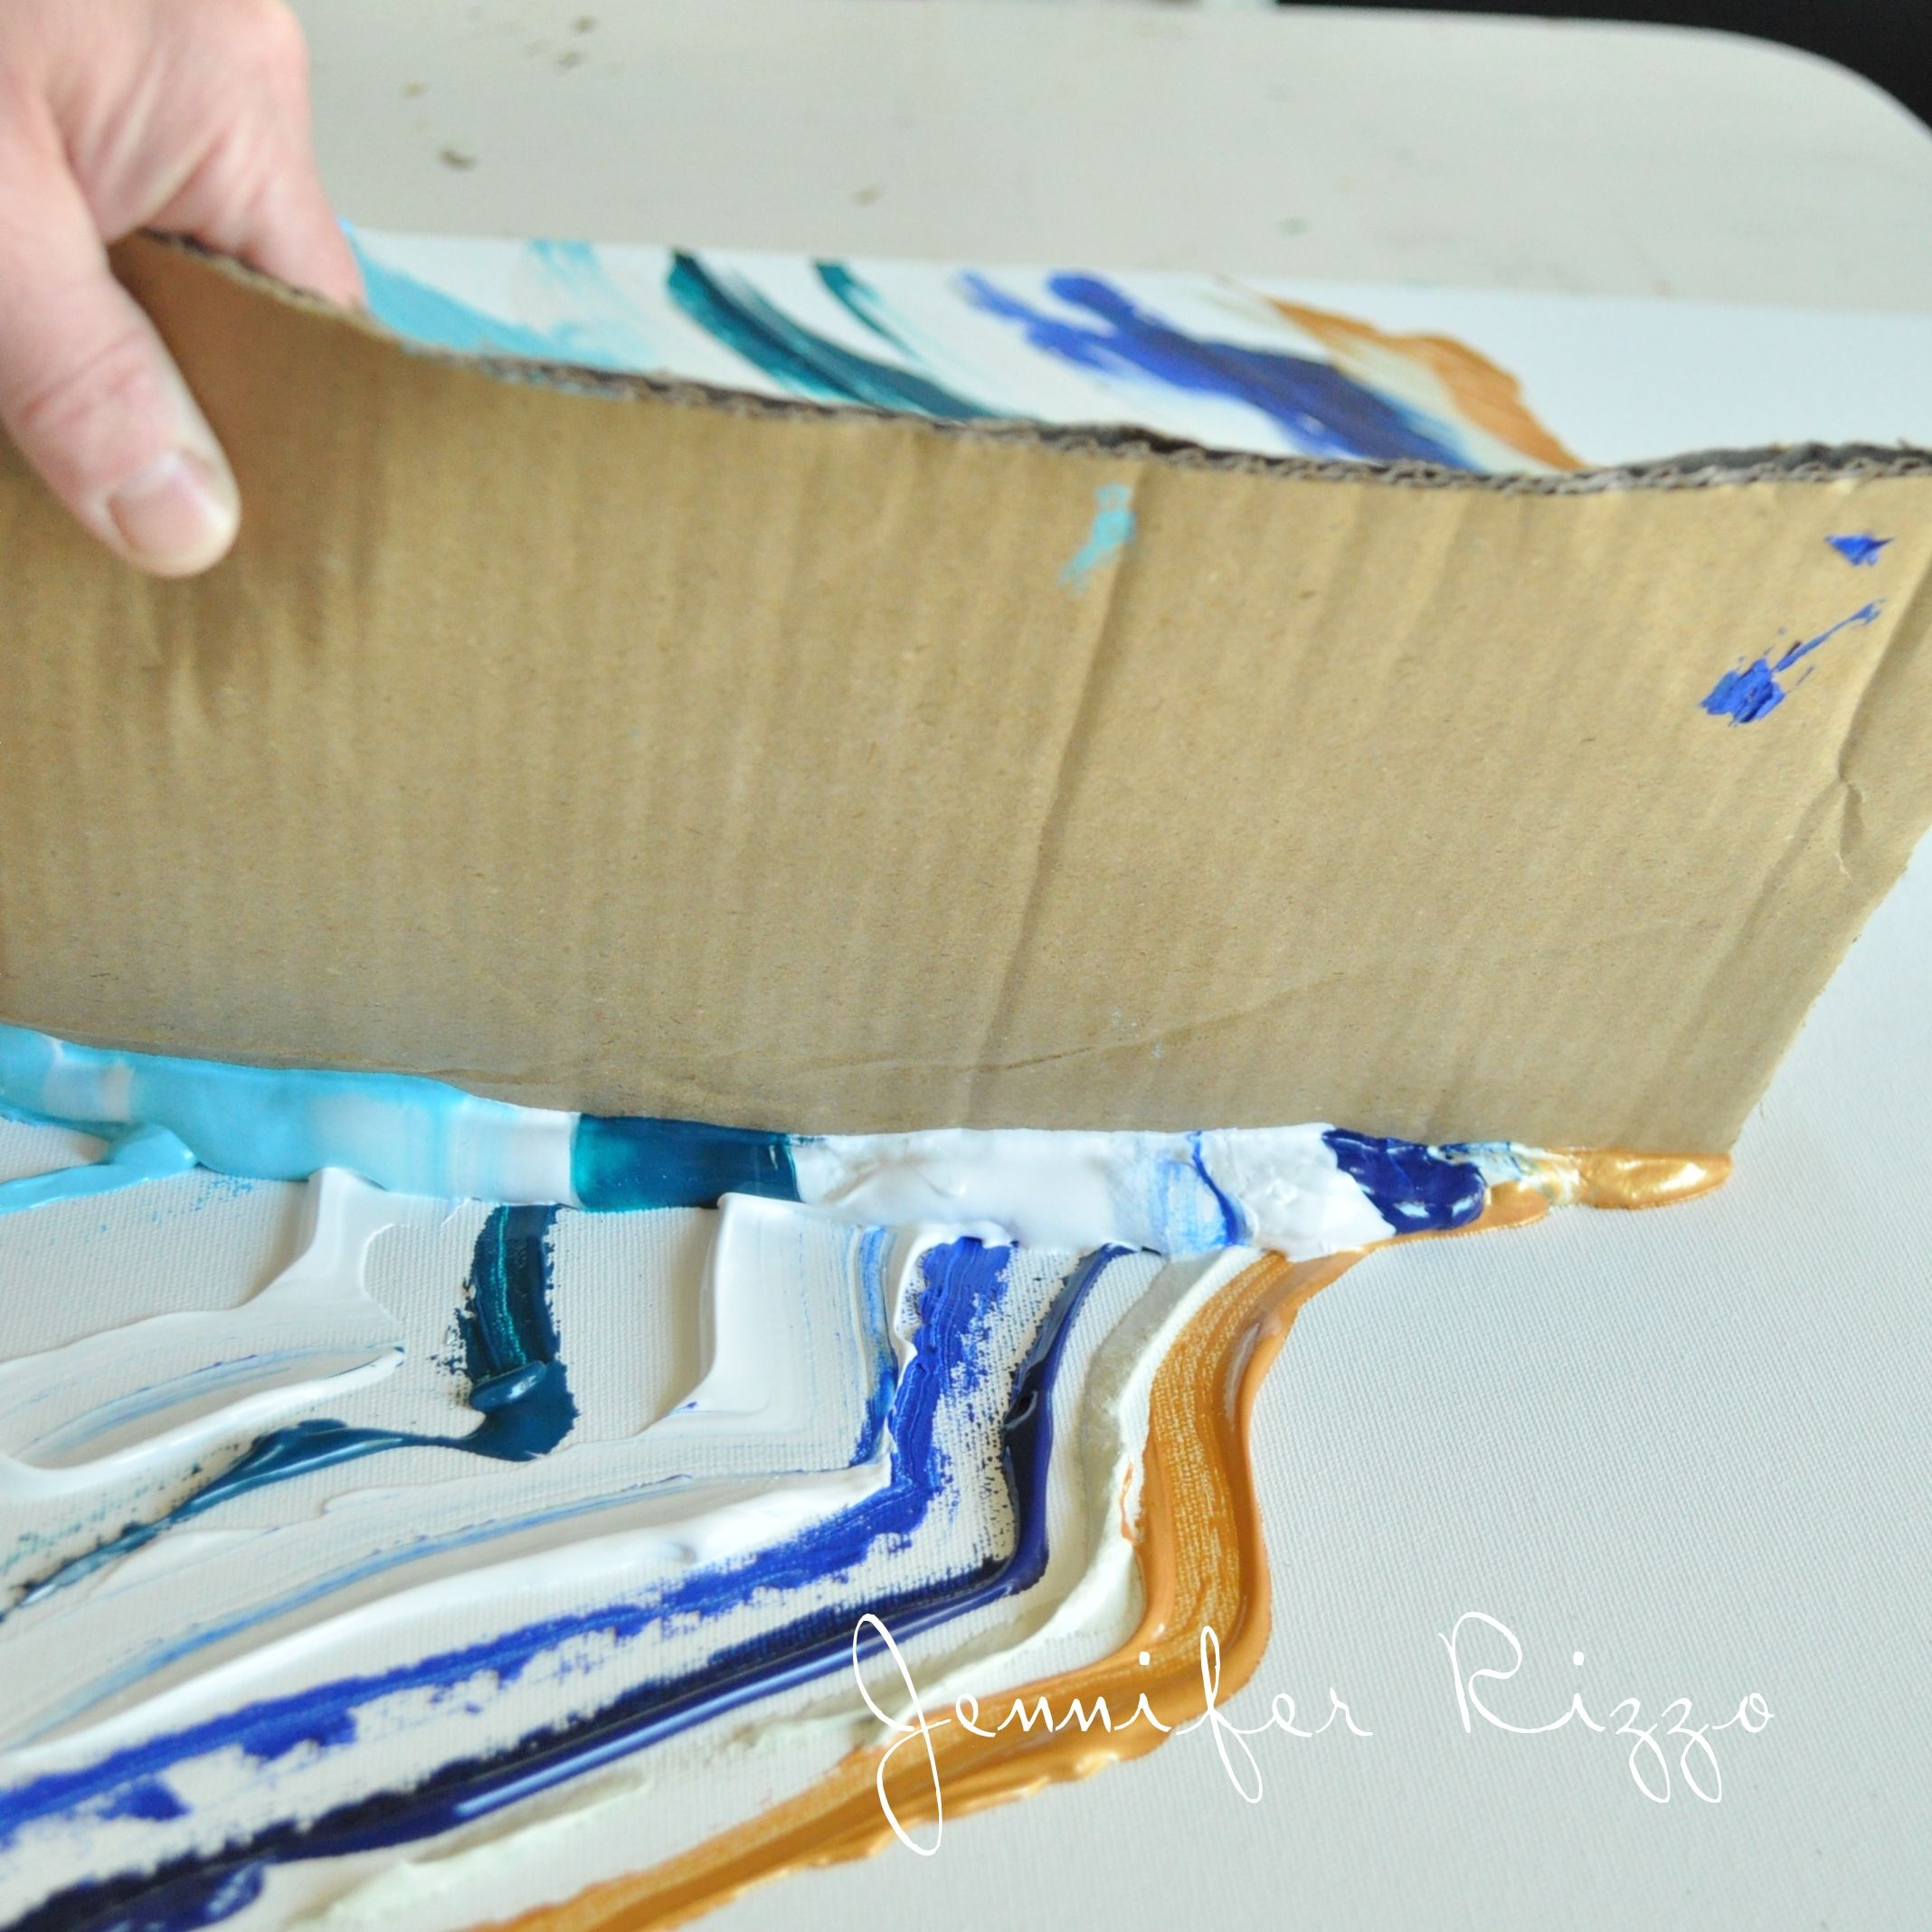 Drag your cardboard across the paint for an agate pattern for Diy abstract acrylic painting